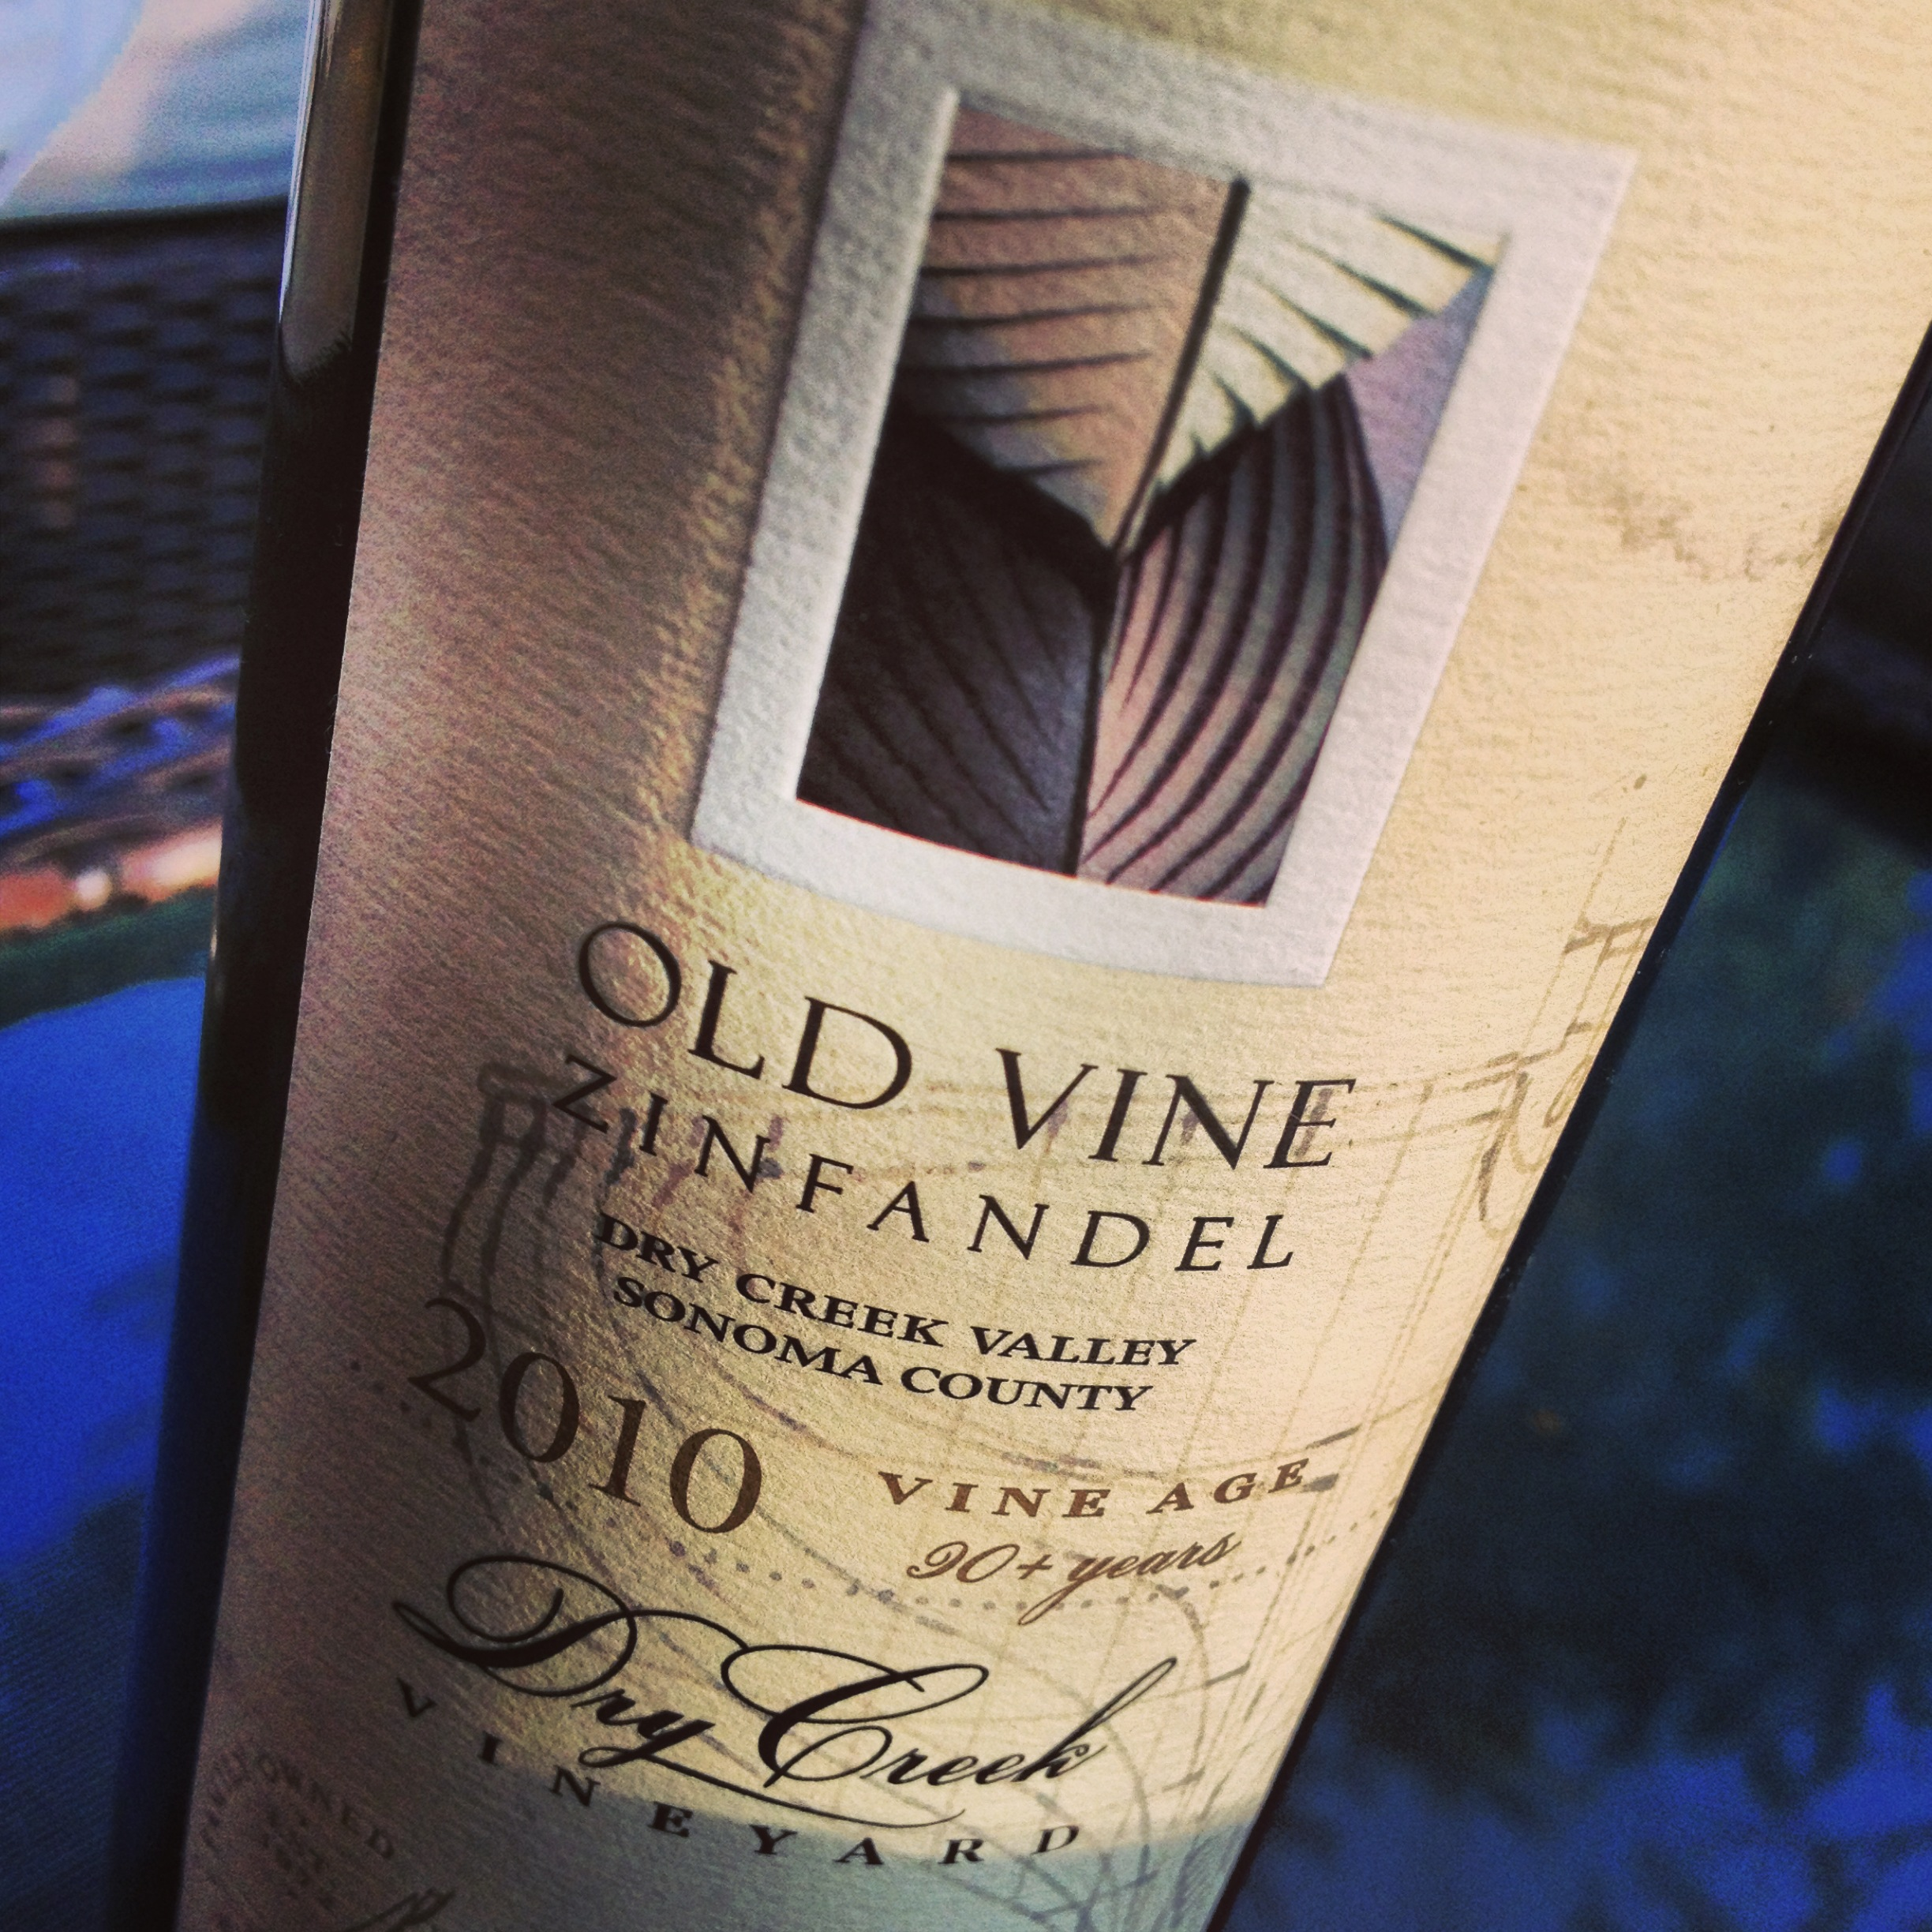 Pair This: Dry Creek Vineyard Old Vine Zinfandel 2010 with Bacon and Blue Cheese Steaks